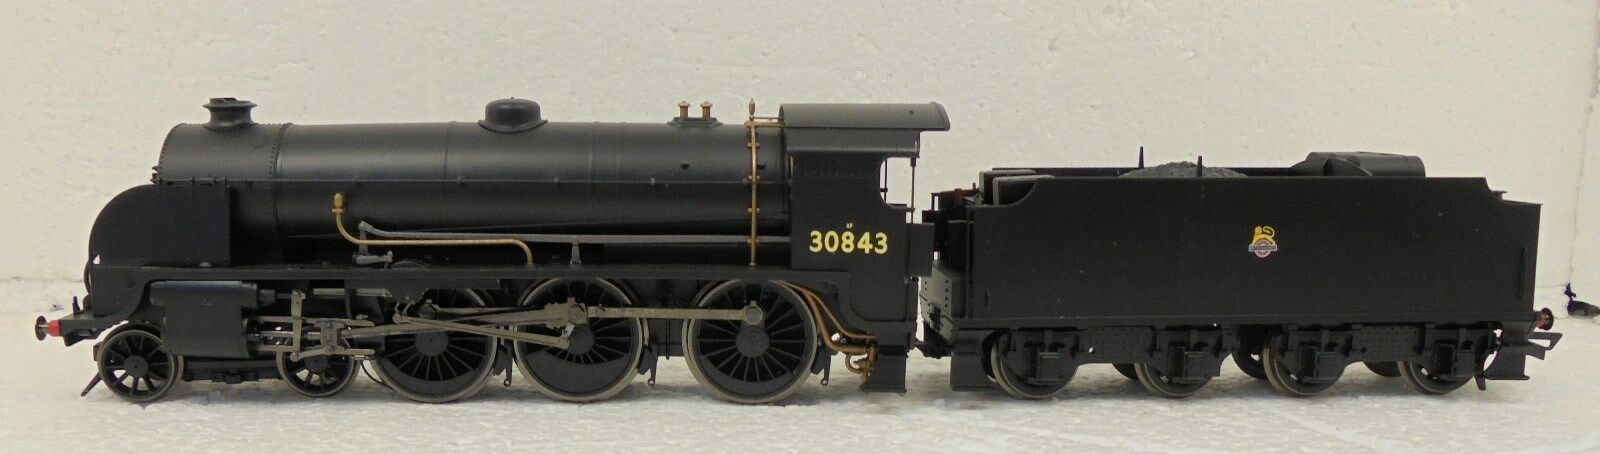 Hornby R3328 BR (Early) S15 Class '30843'